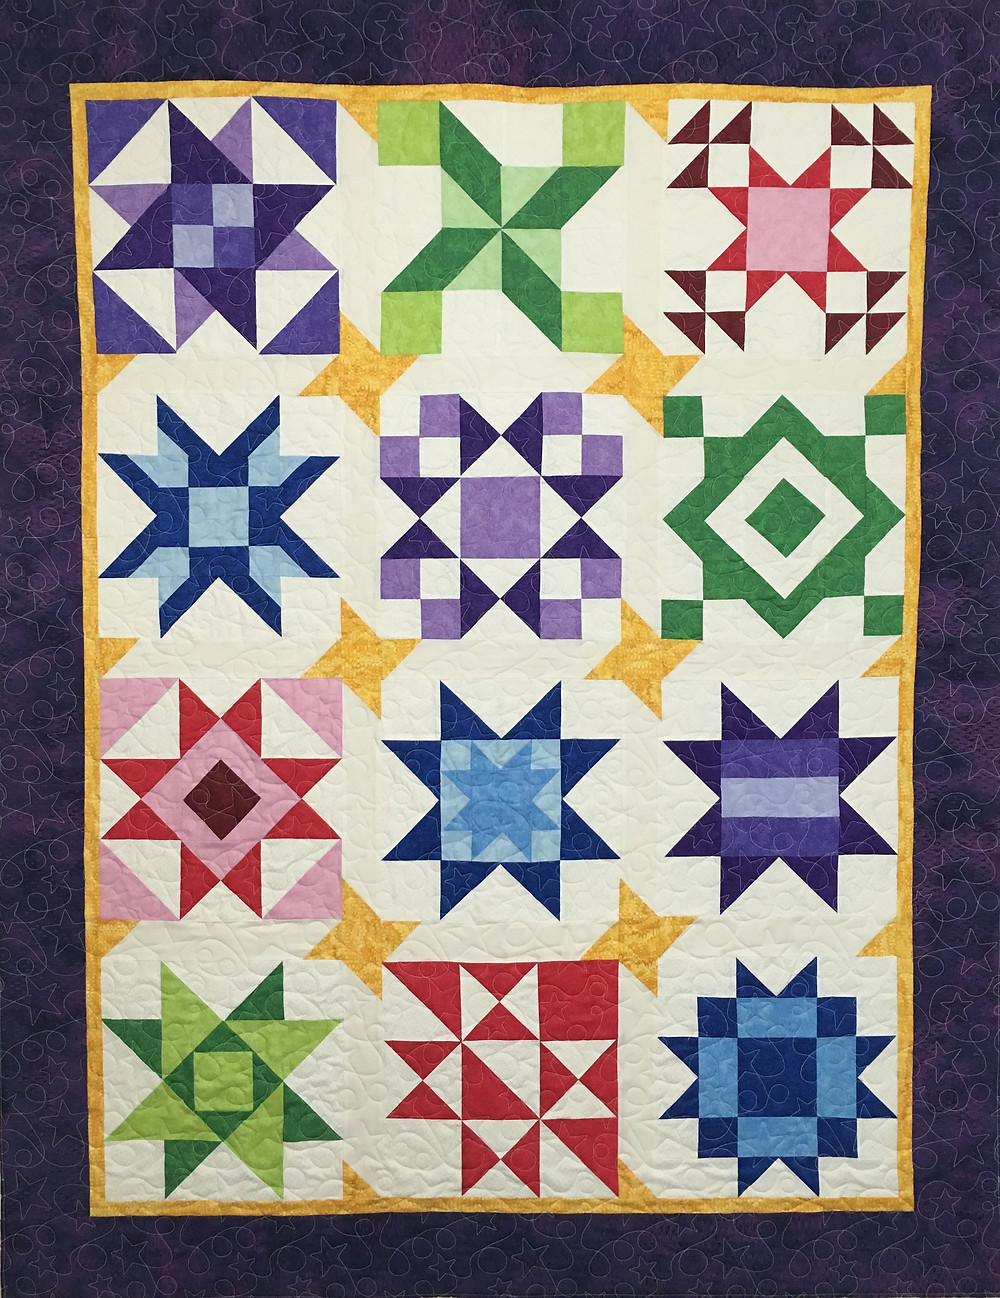 Mary Starry Wonders Block of the Month Quilt